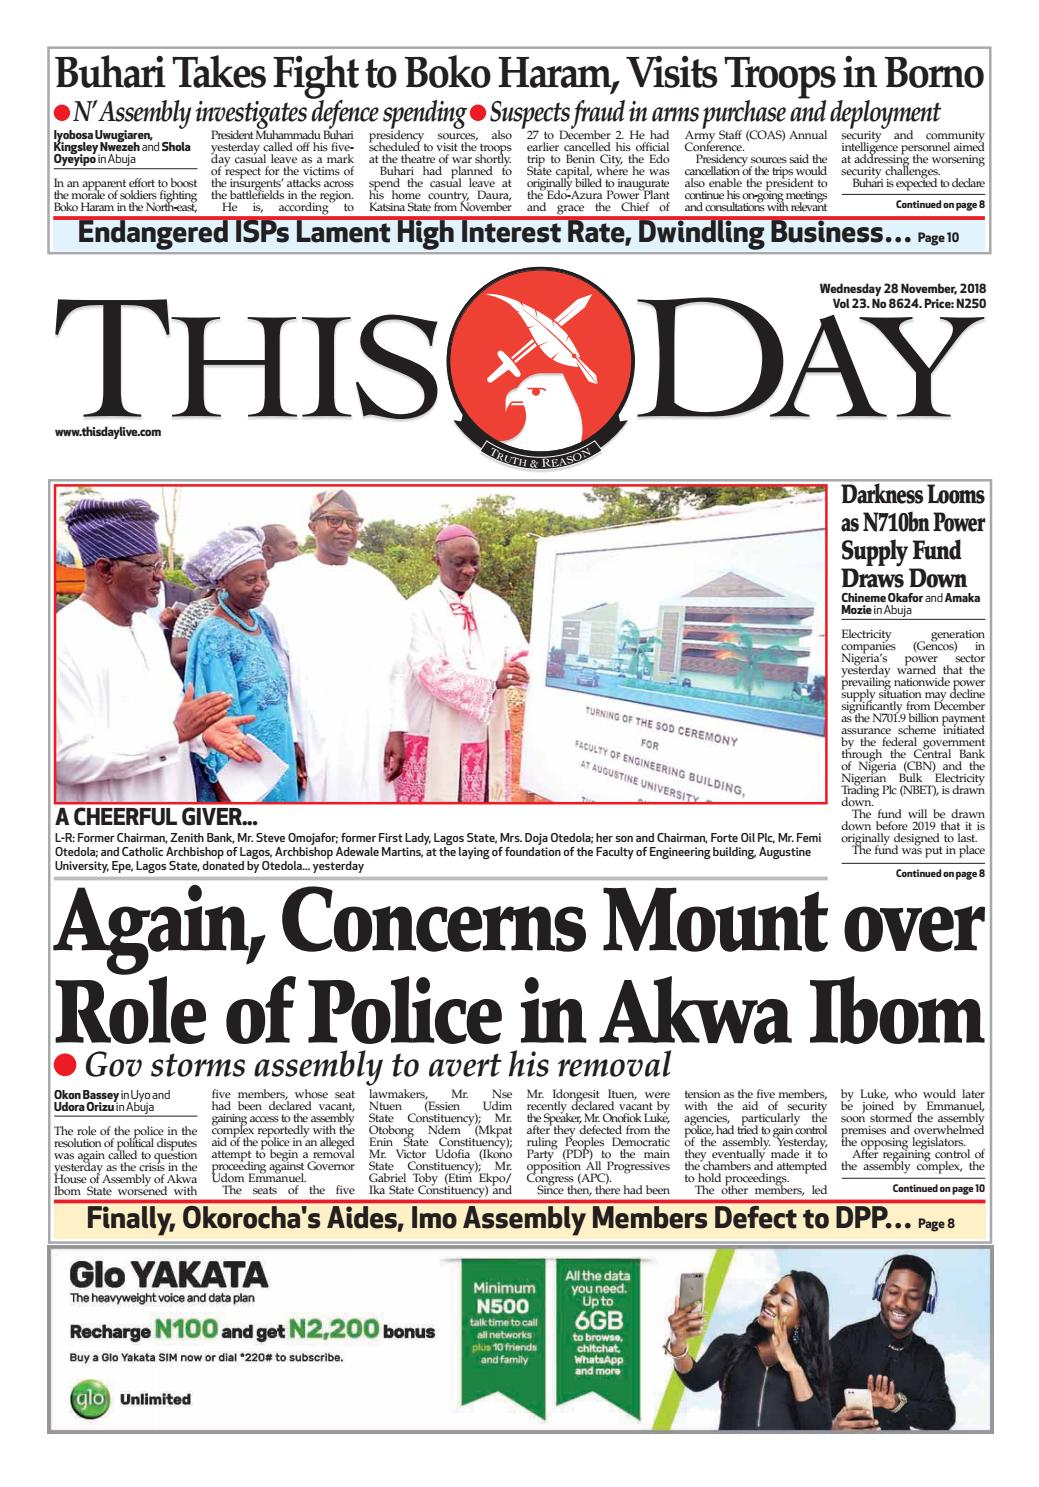 WEDNESDAY 28TH NOVEMBER 2018 by THISDAY Newspapers Ltd - issuu